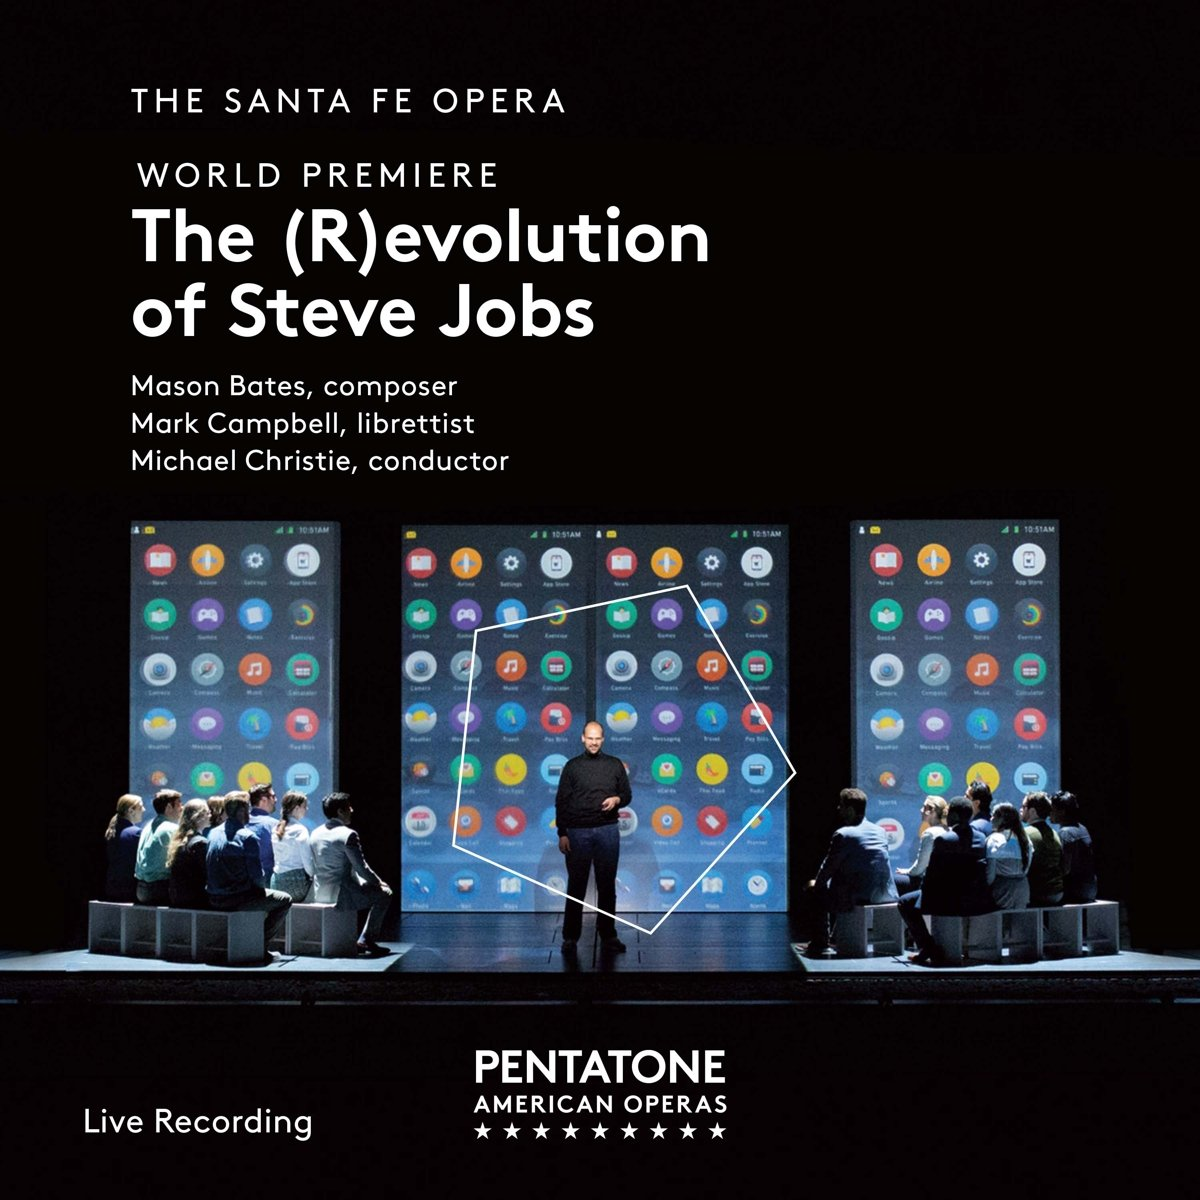 Bates: The (R)evolution of Steve Jobs by Pentatone